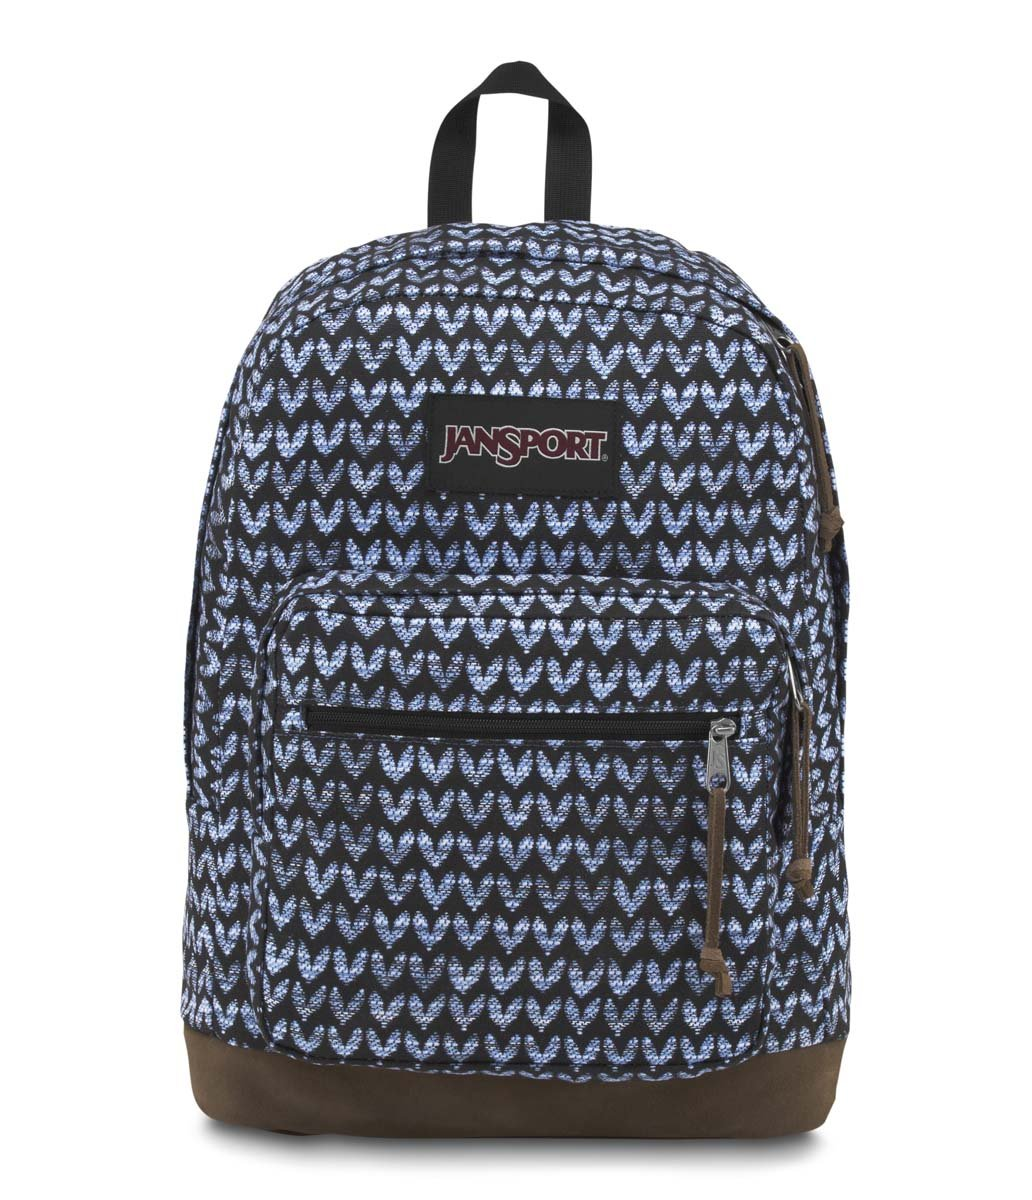 4a2dfc7fdb2d Jansport Right Pack Expressions Isabella Pineapple Backpack- Fenix ...